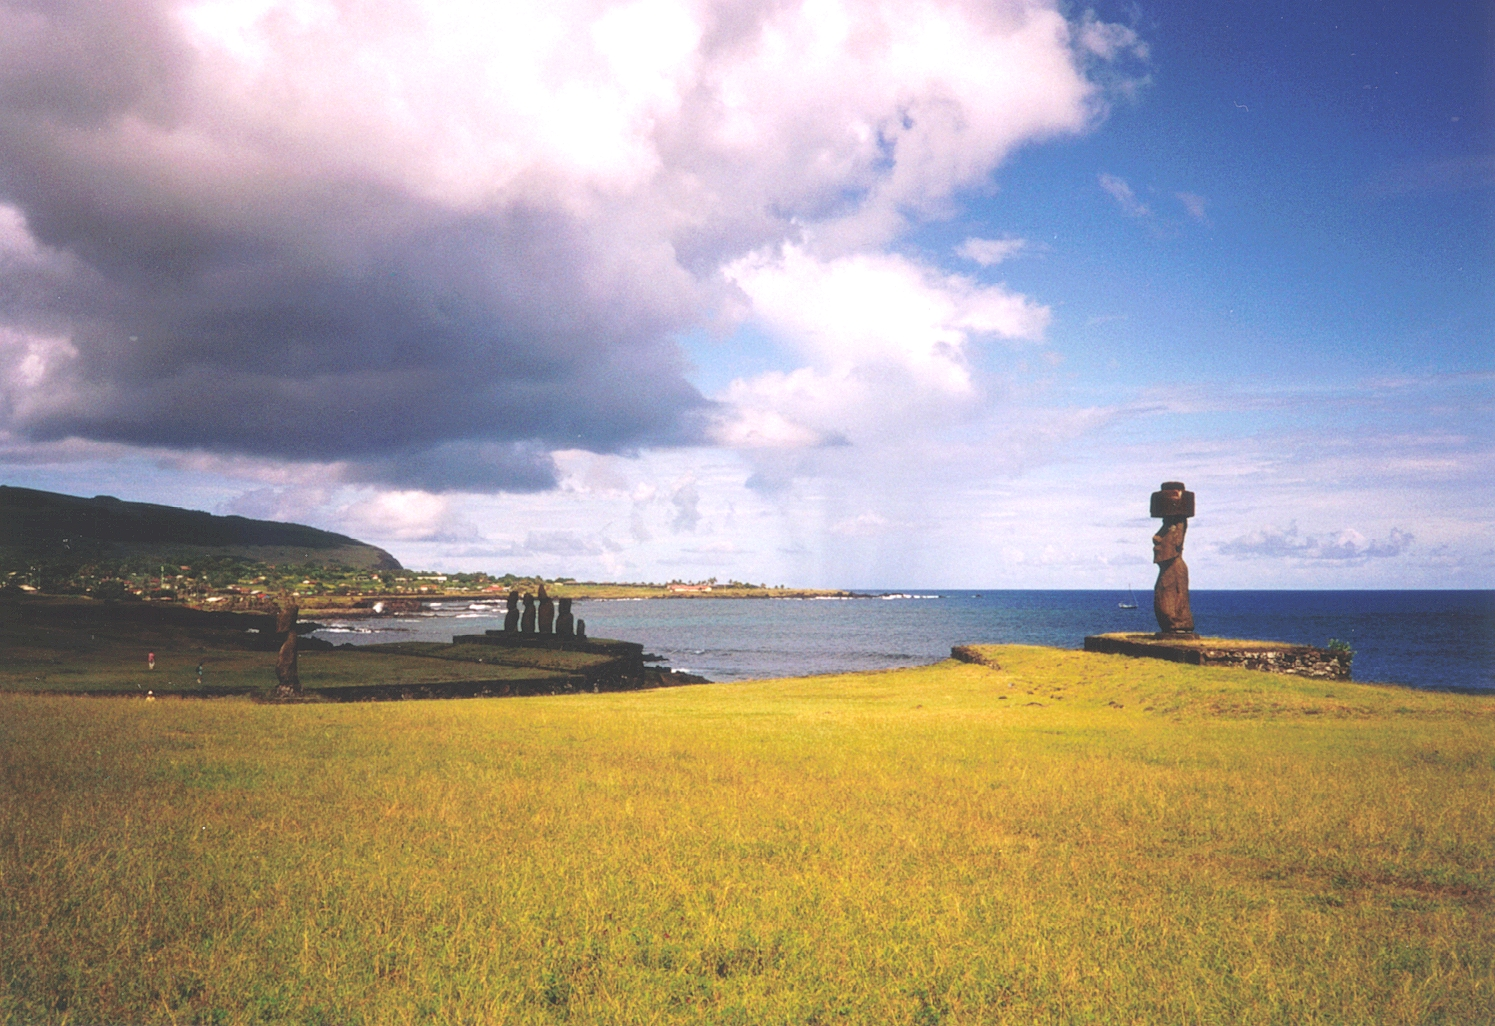 The Ecocide of Easter Island